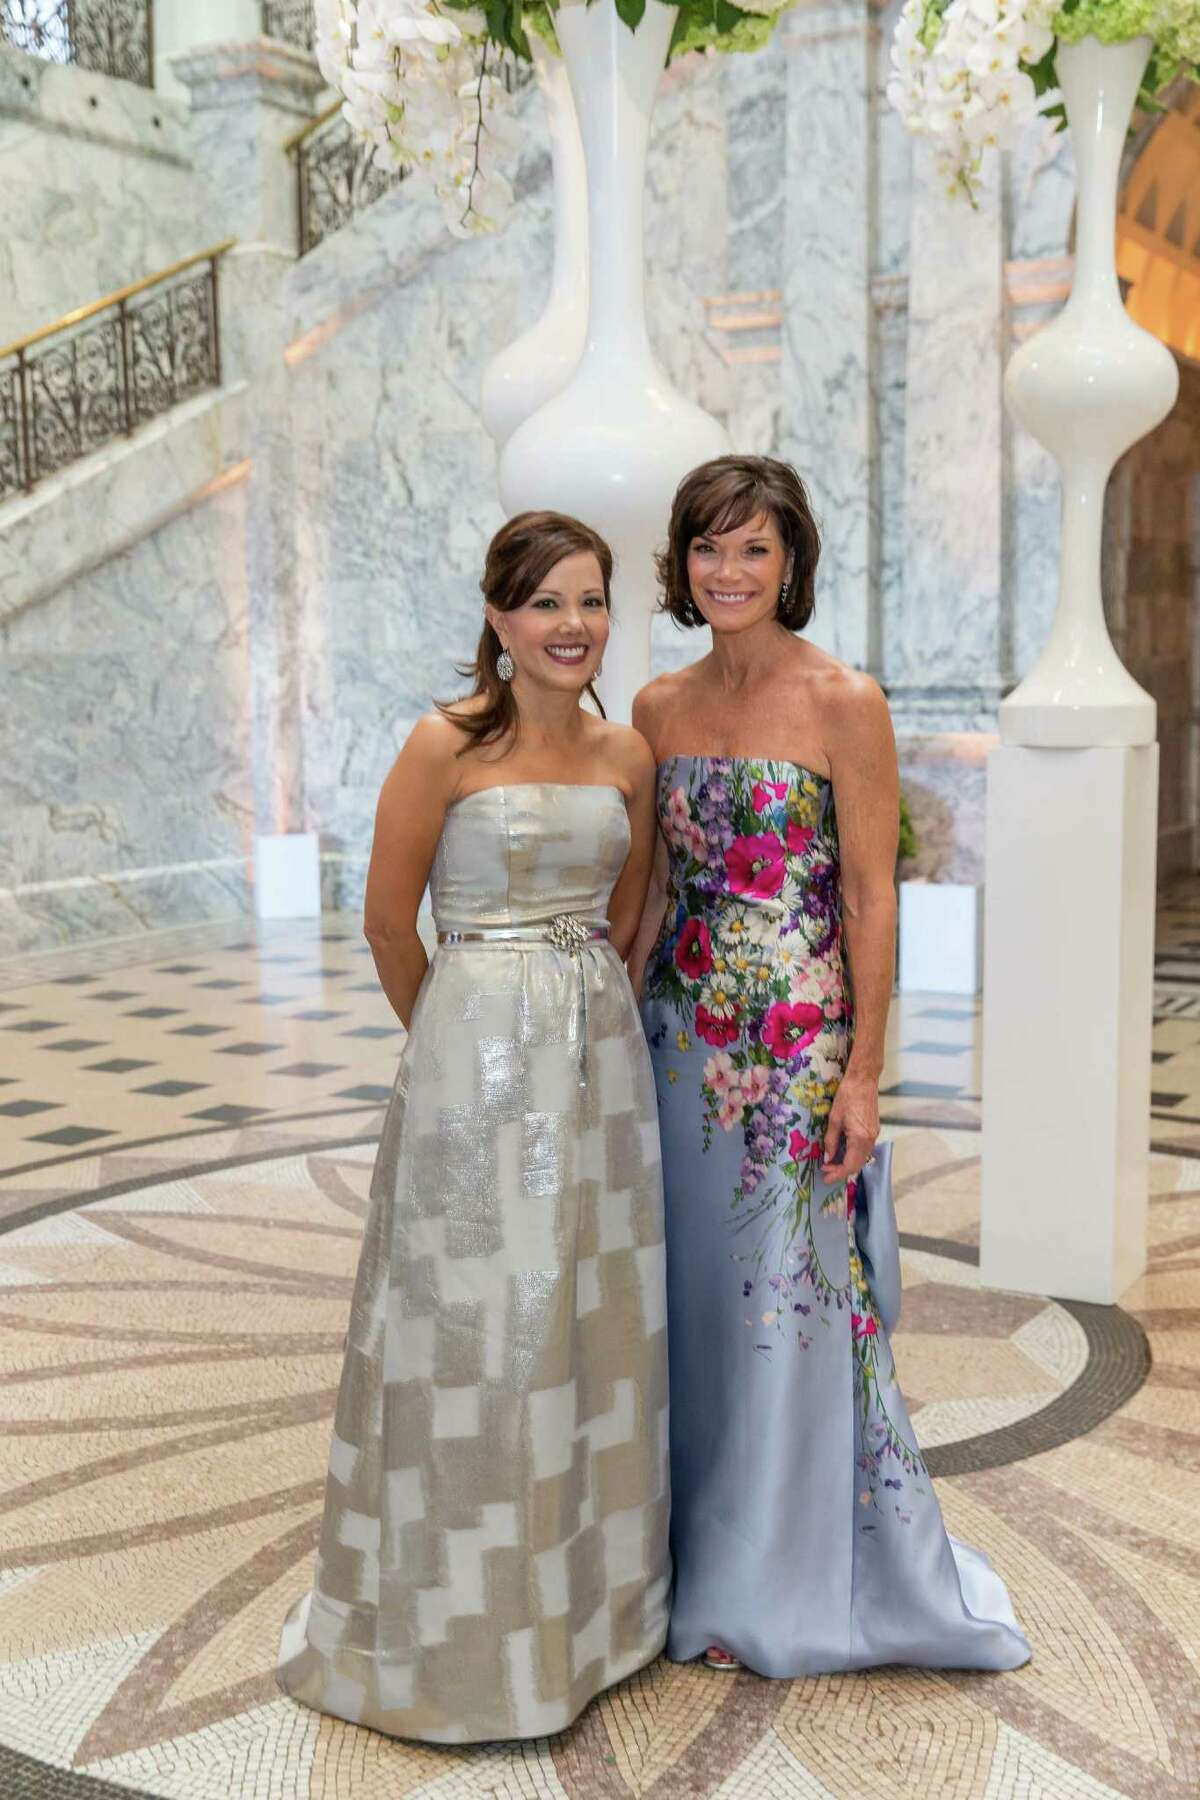 Co-chairs of the event Michele Kirsch and Lisa Mooringat Rodin by Moonlight at the Cantor Arts Center on Sept. 19.